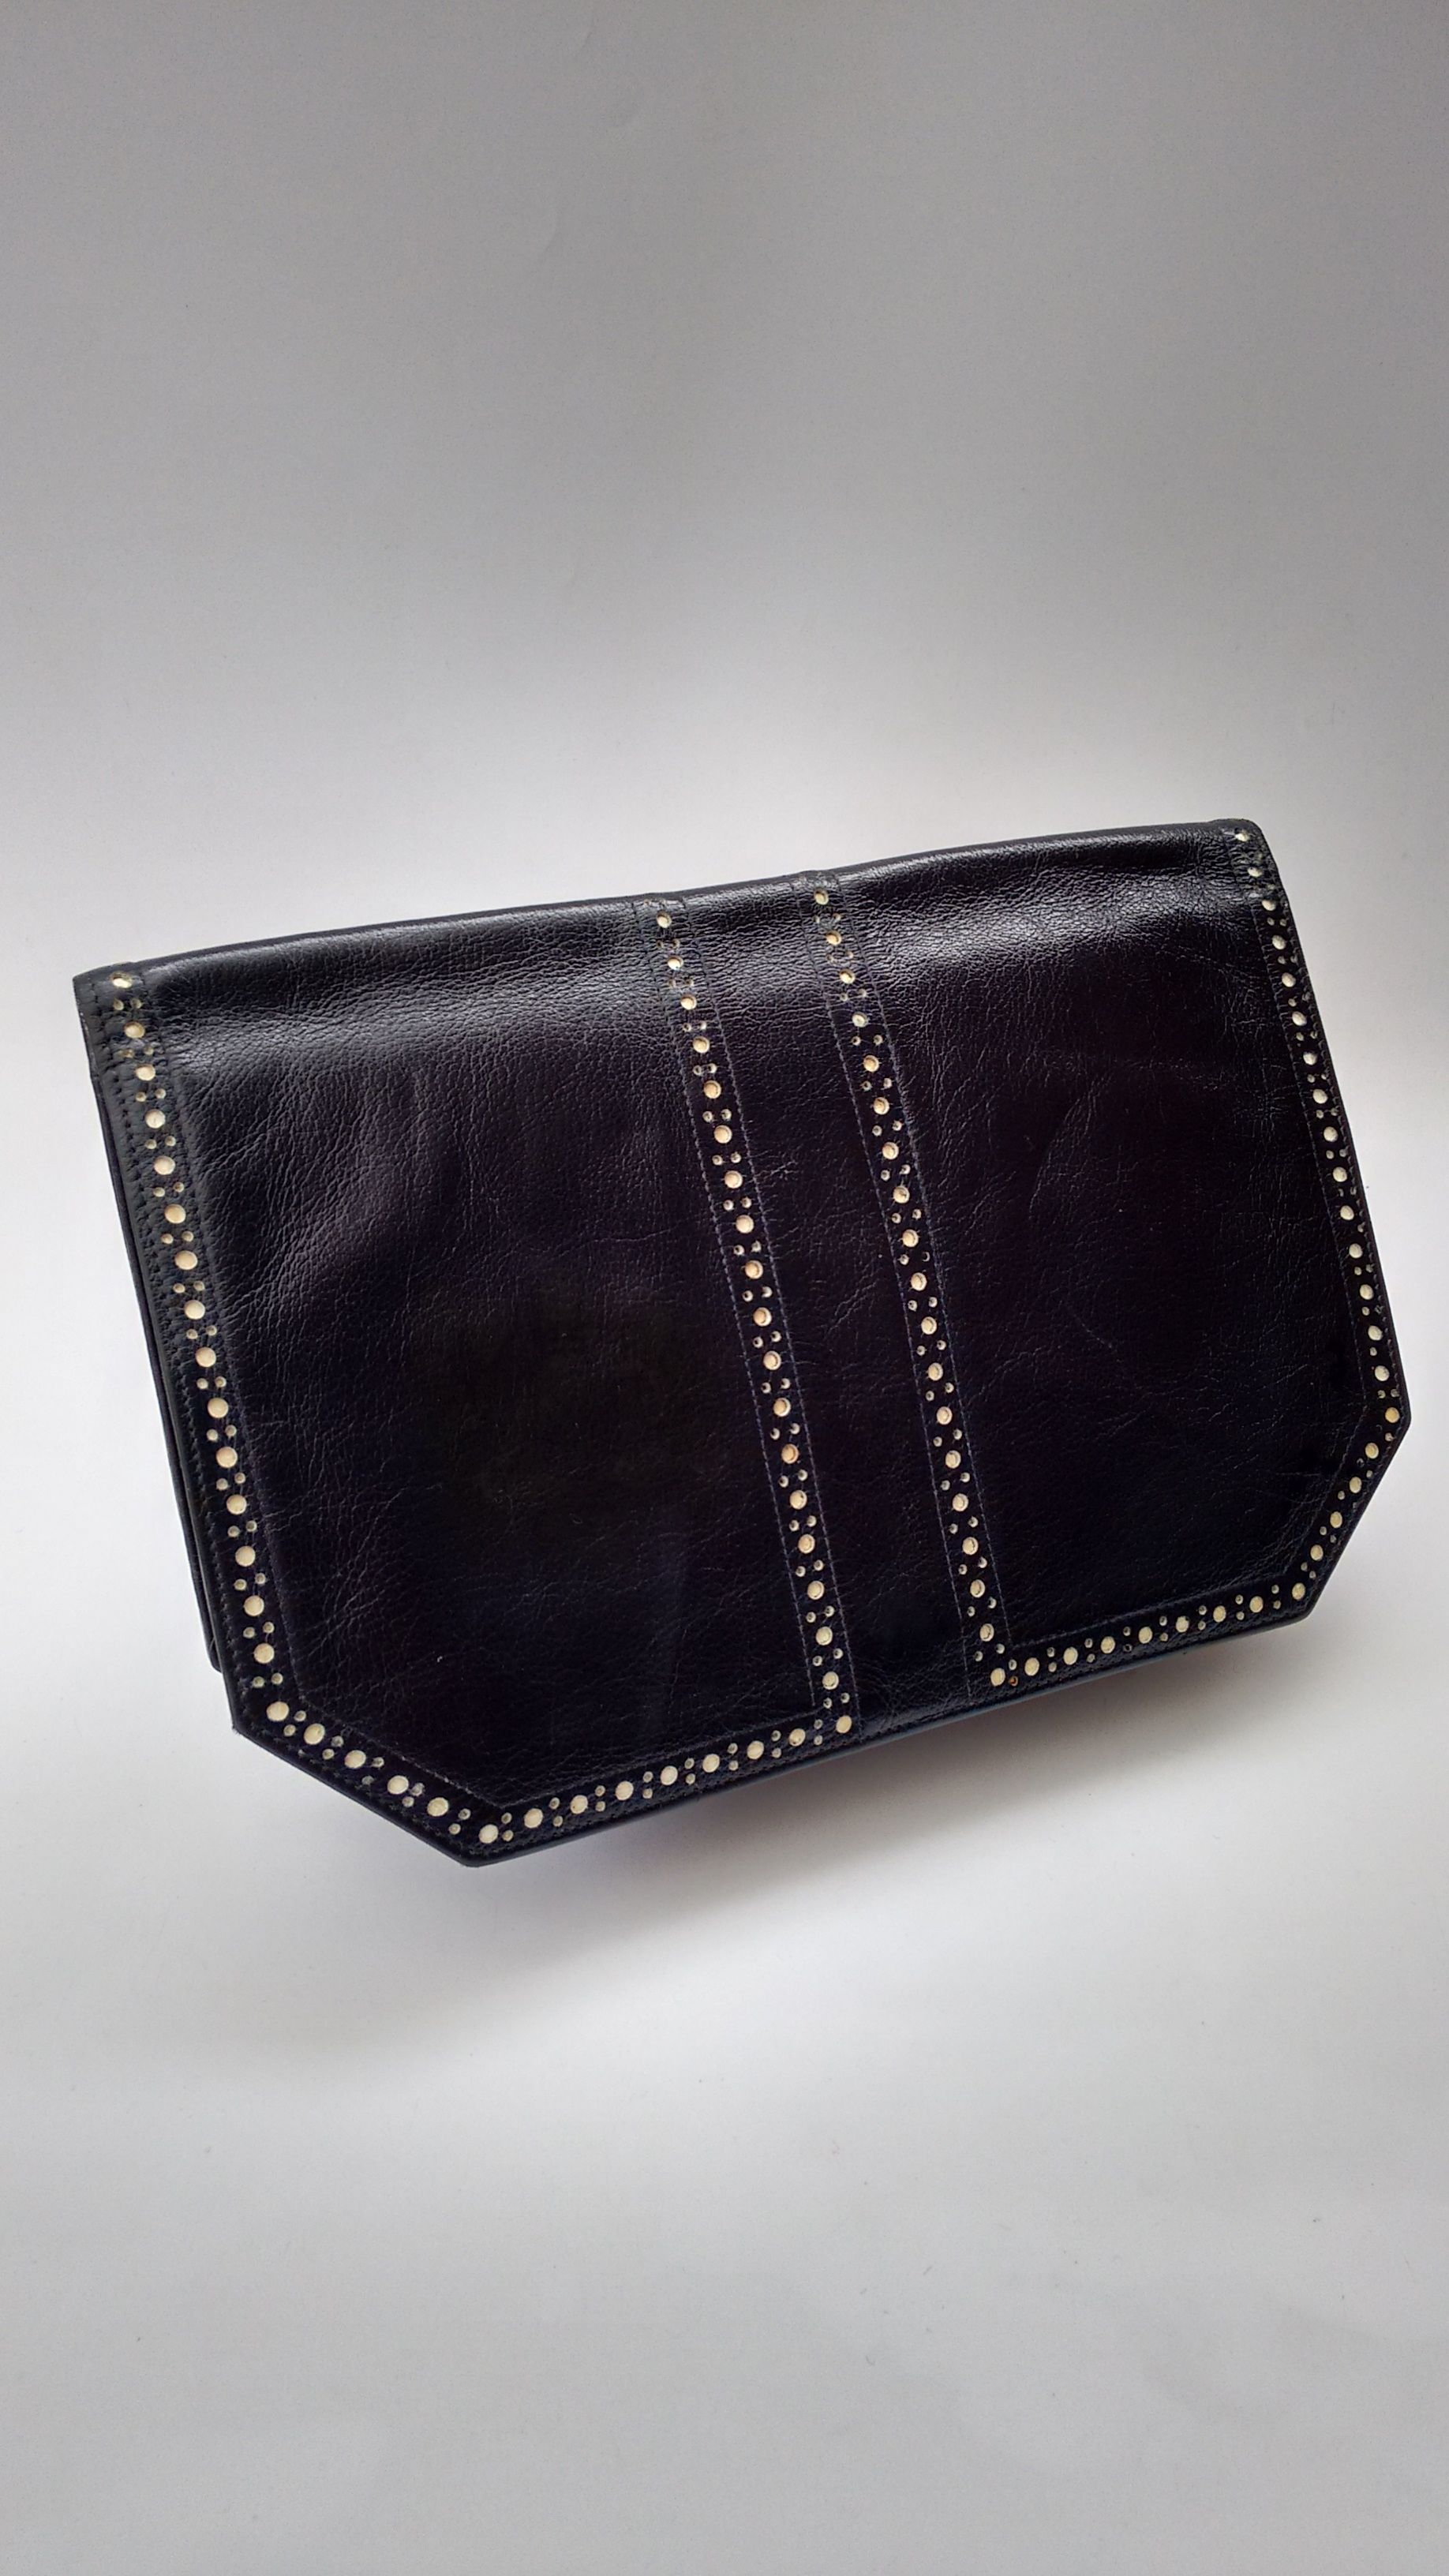 YSL Yves Saint Laurent Vintage Deep Navy almost Black and White Leather  Clutch Bag. French Designer Purse. 38d19711a2286